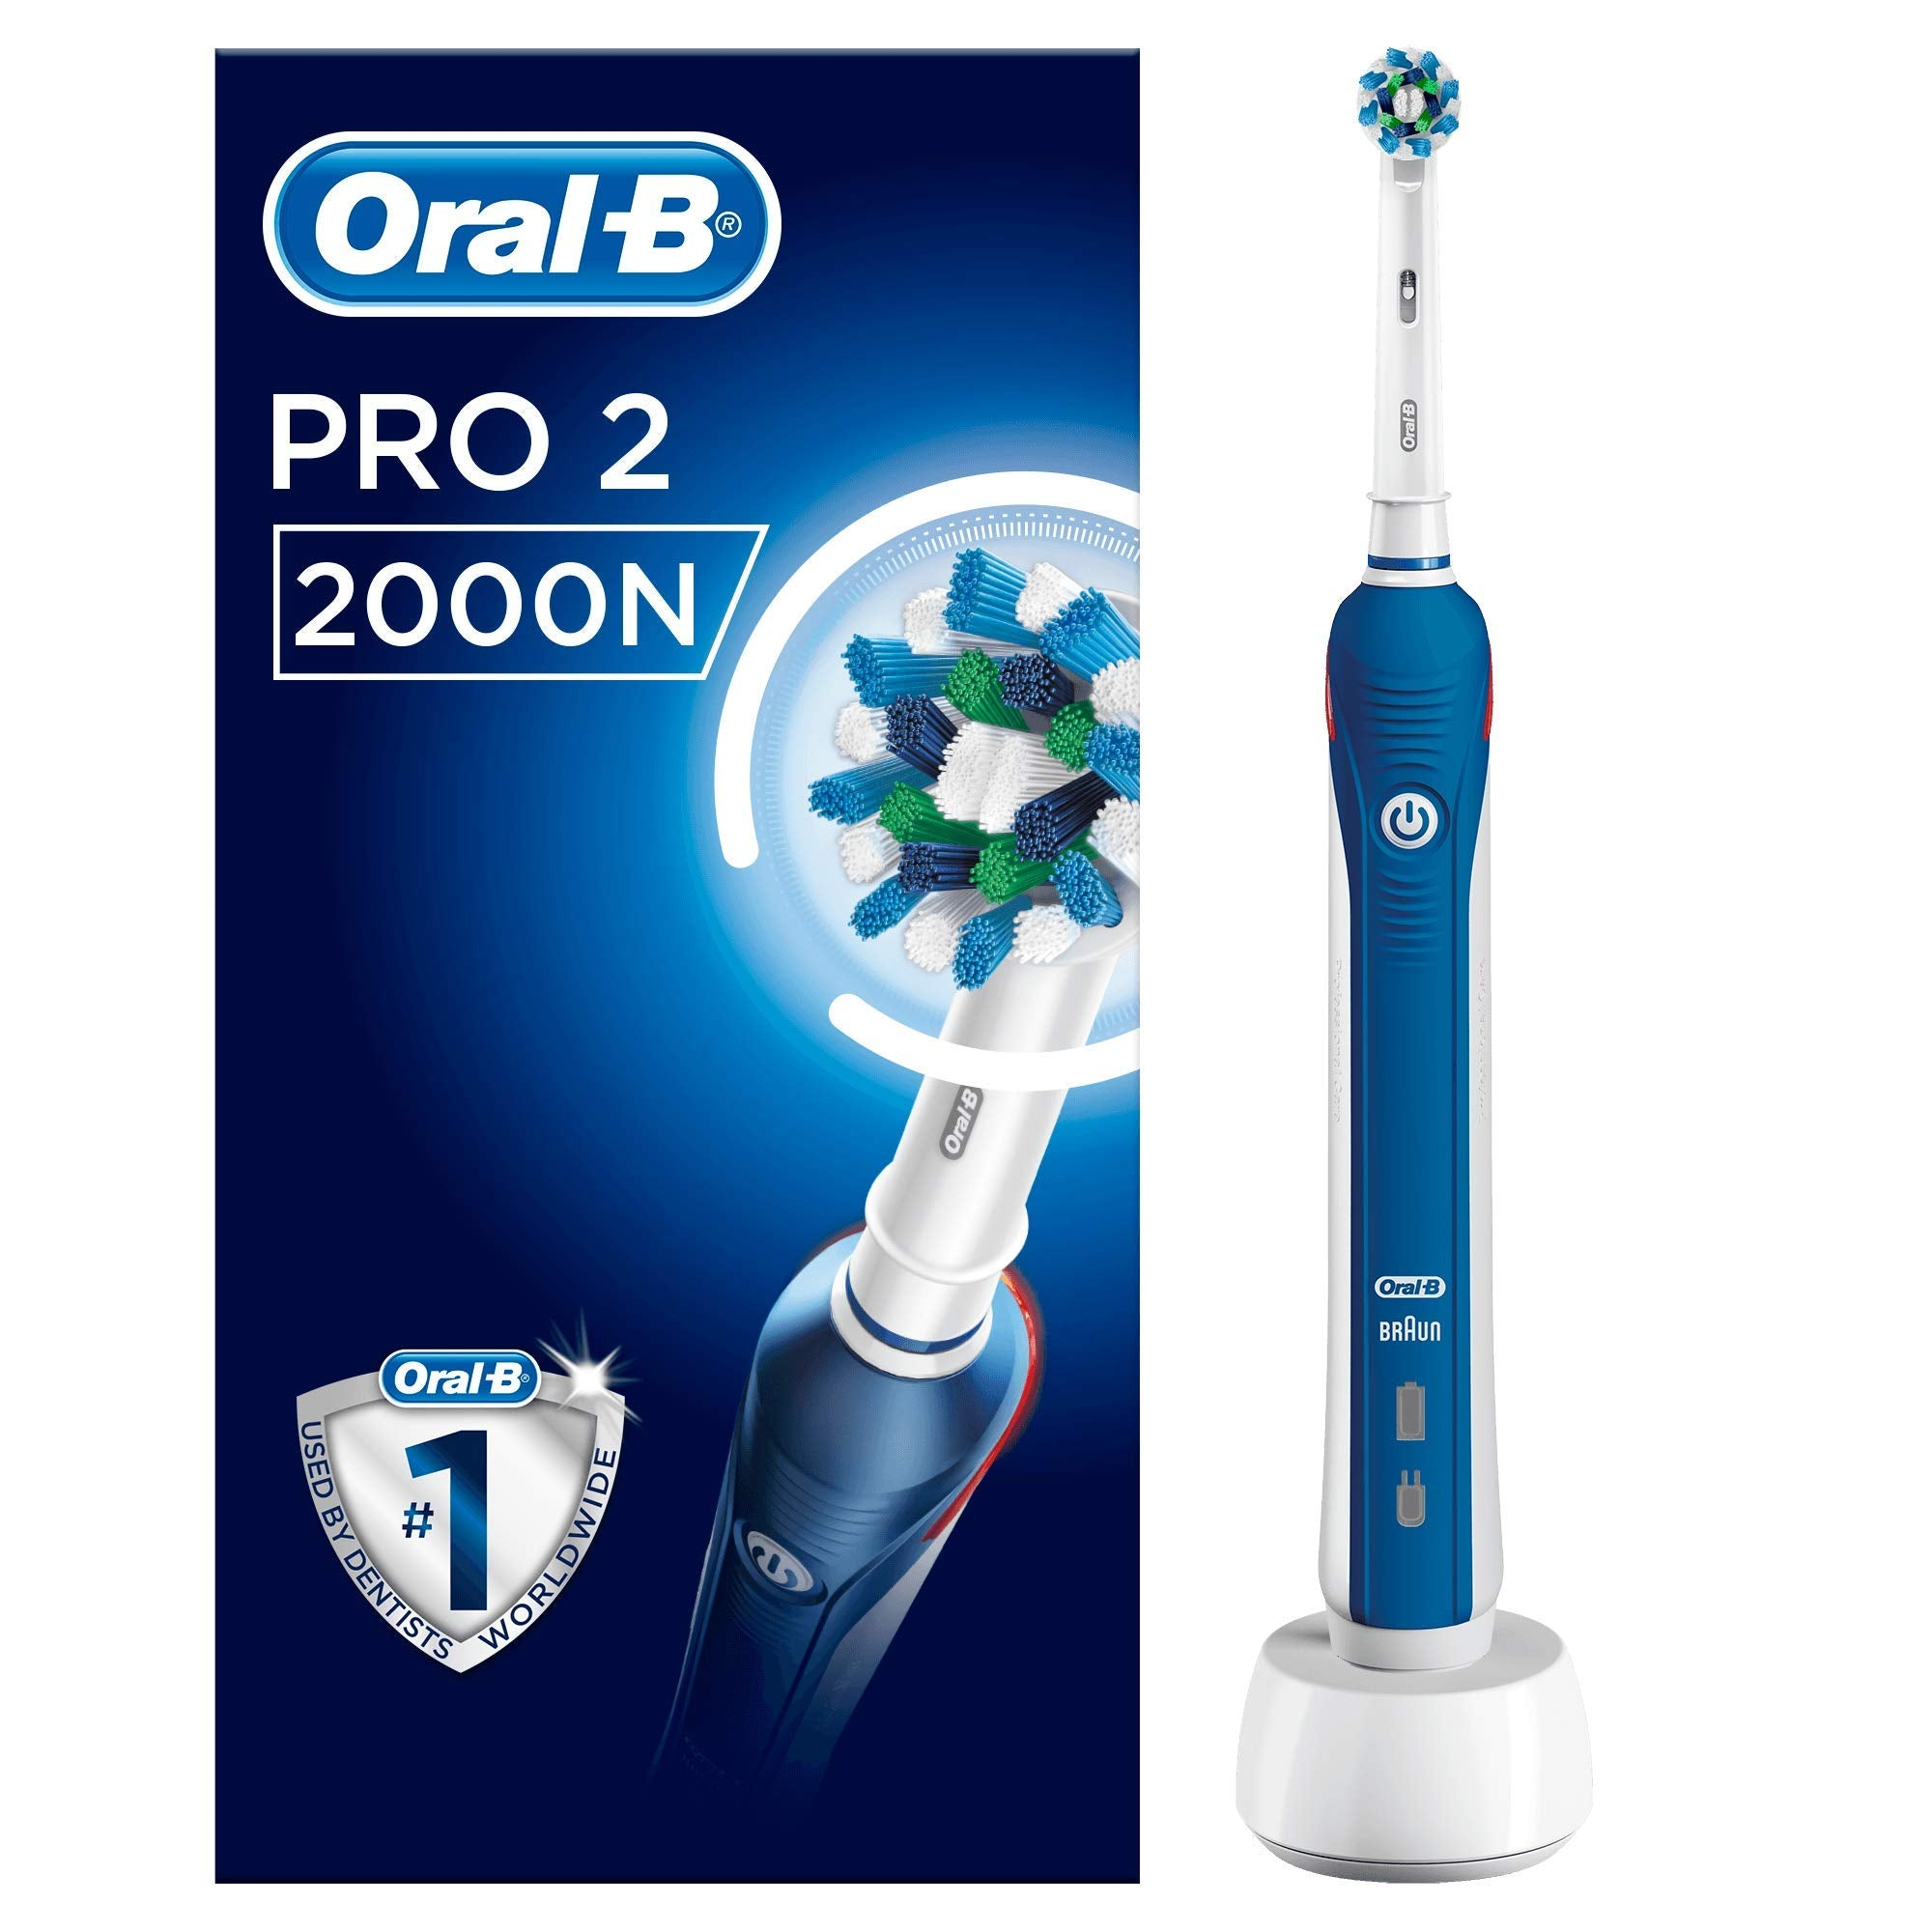 Oral-B Pro 2 2000N Cross Action Rechargable Electric Toothbrush - Oral-B - Pazarska